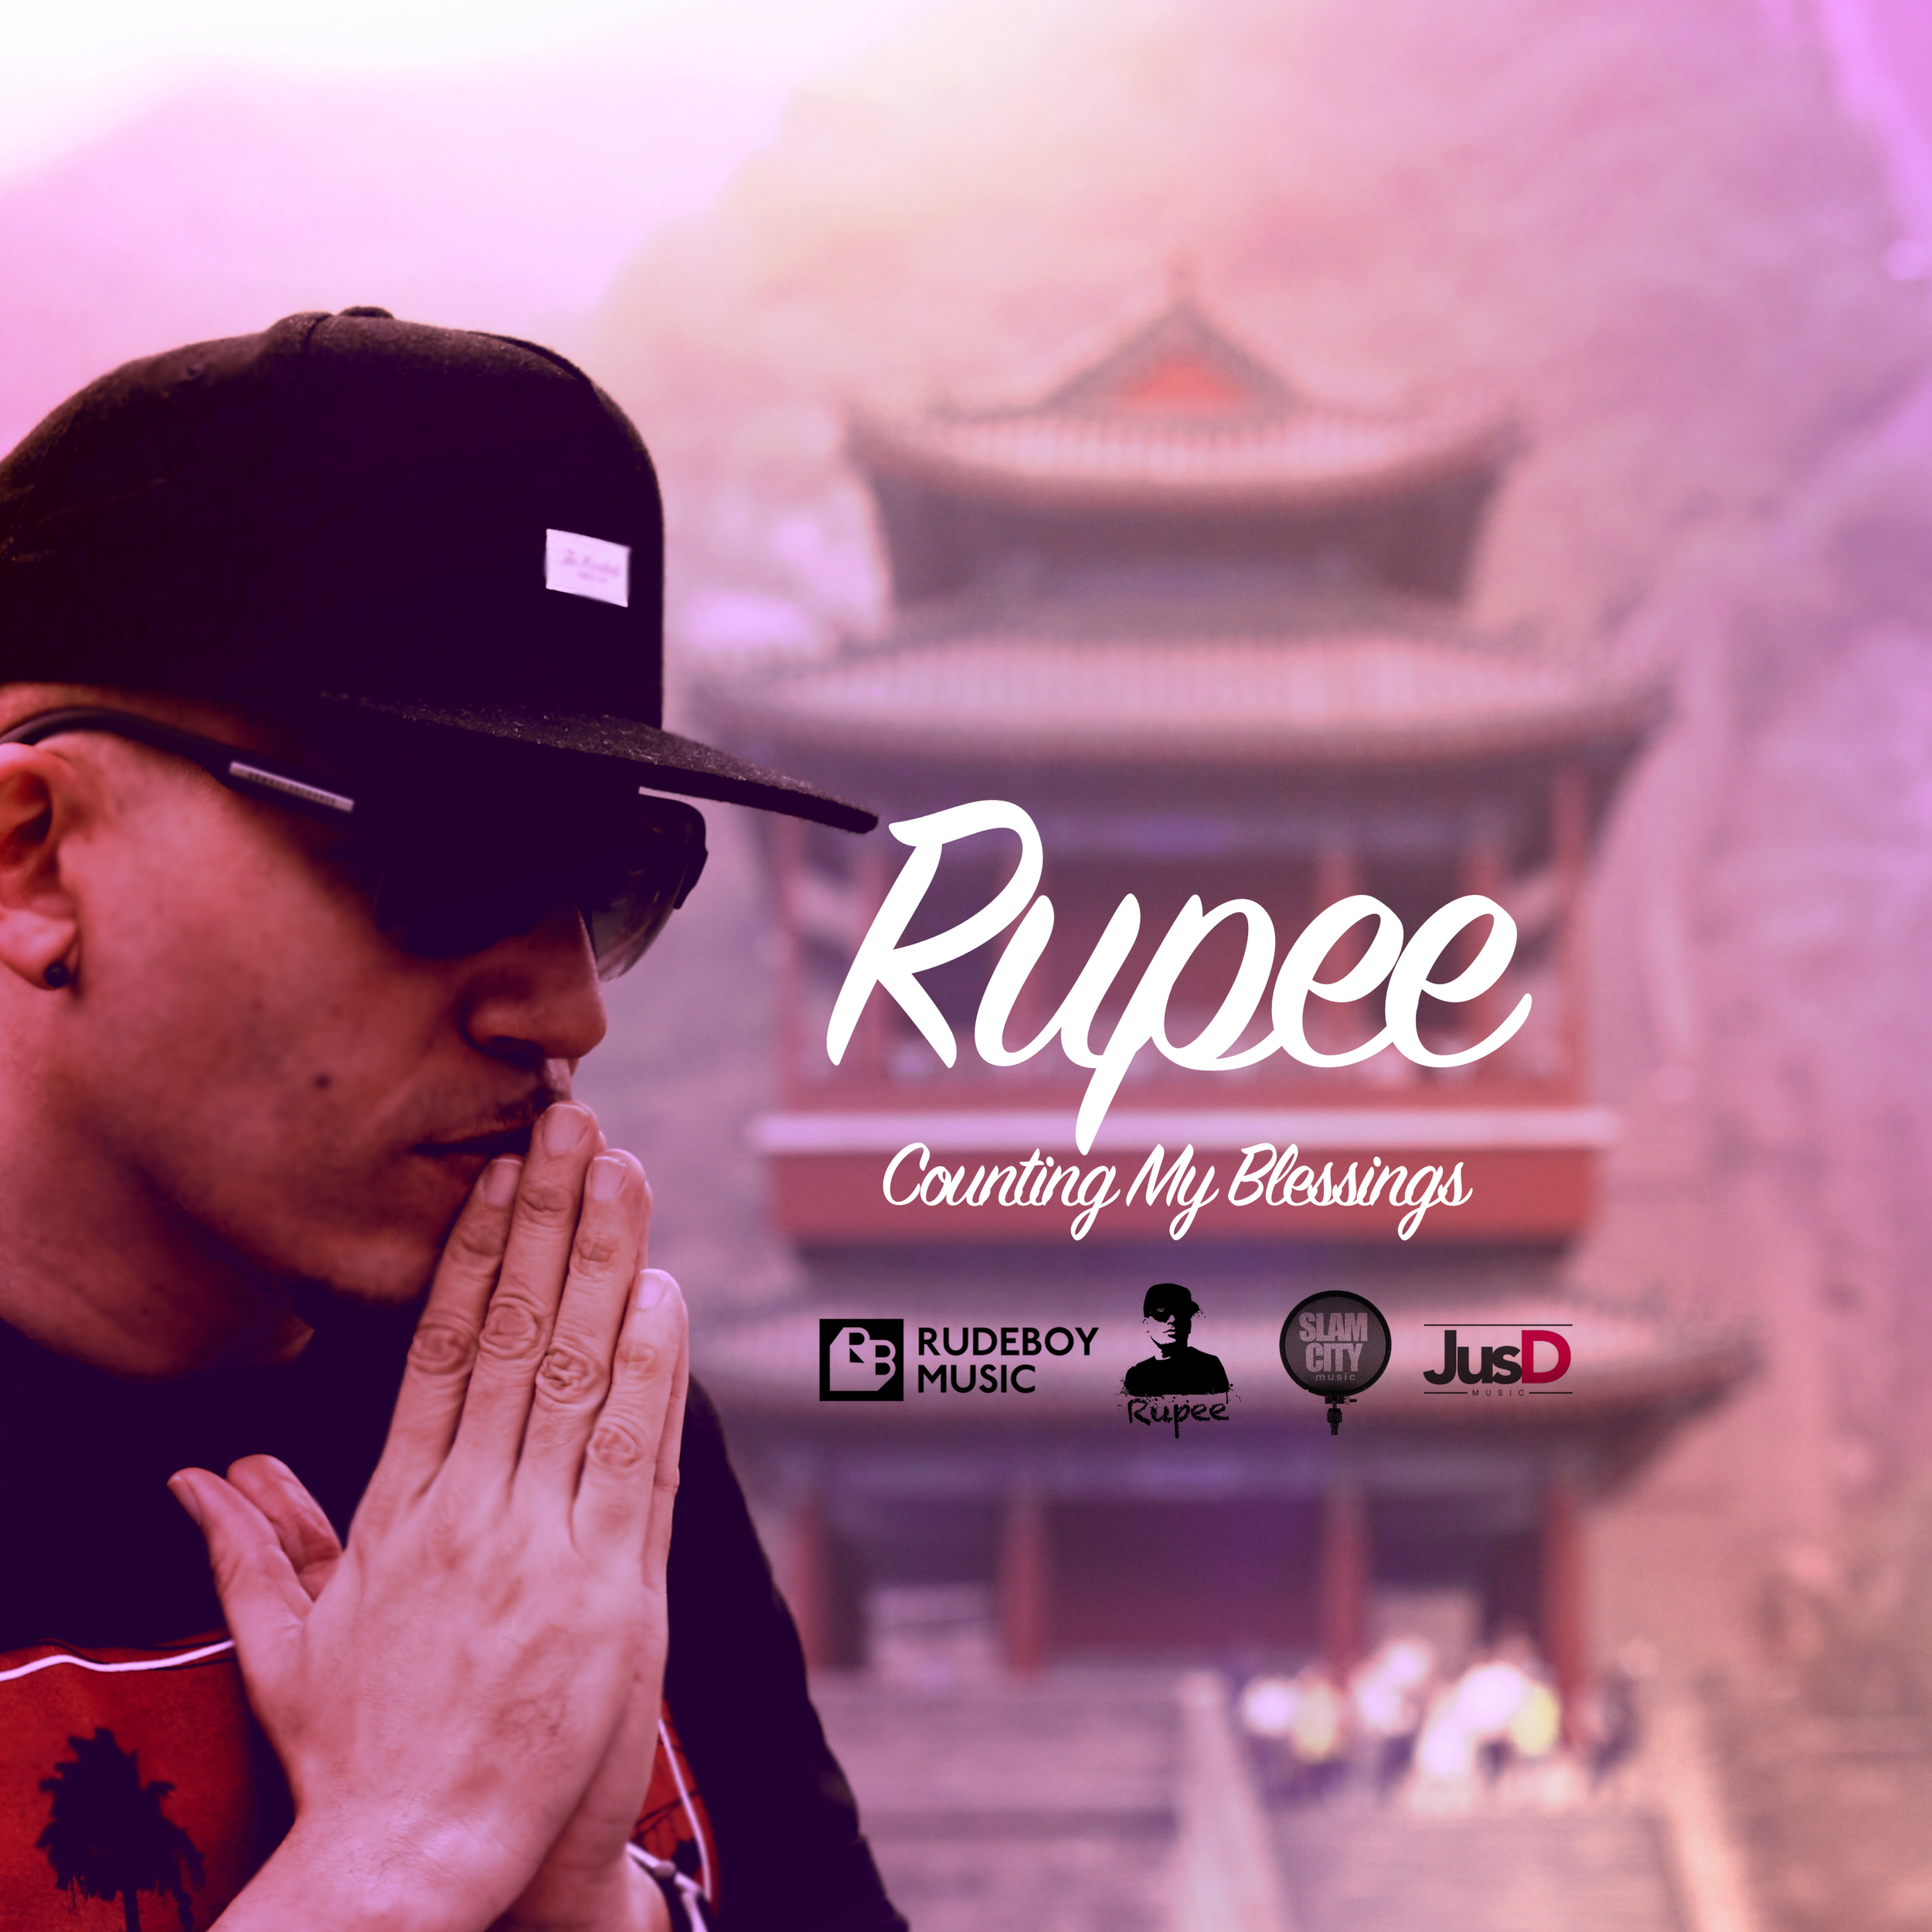 Rupee-CountingMyBlessings-2016-usa.jpg